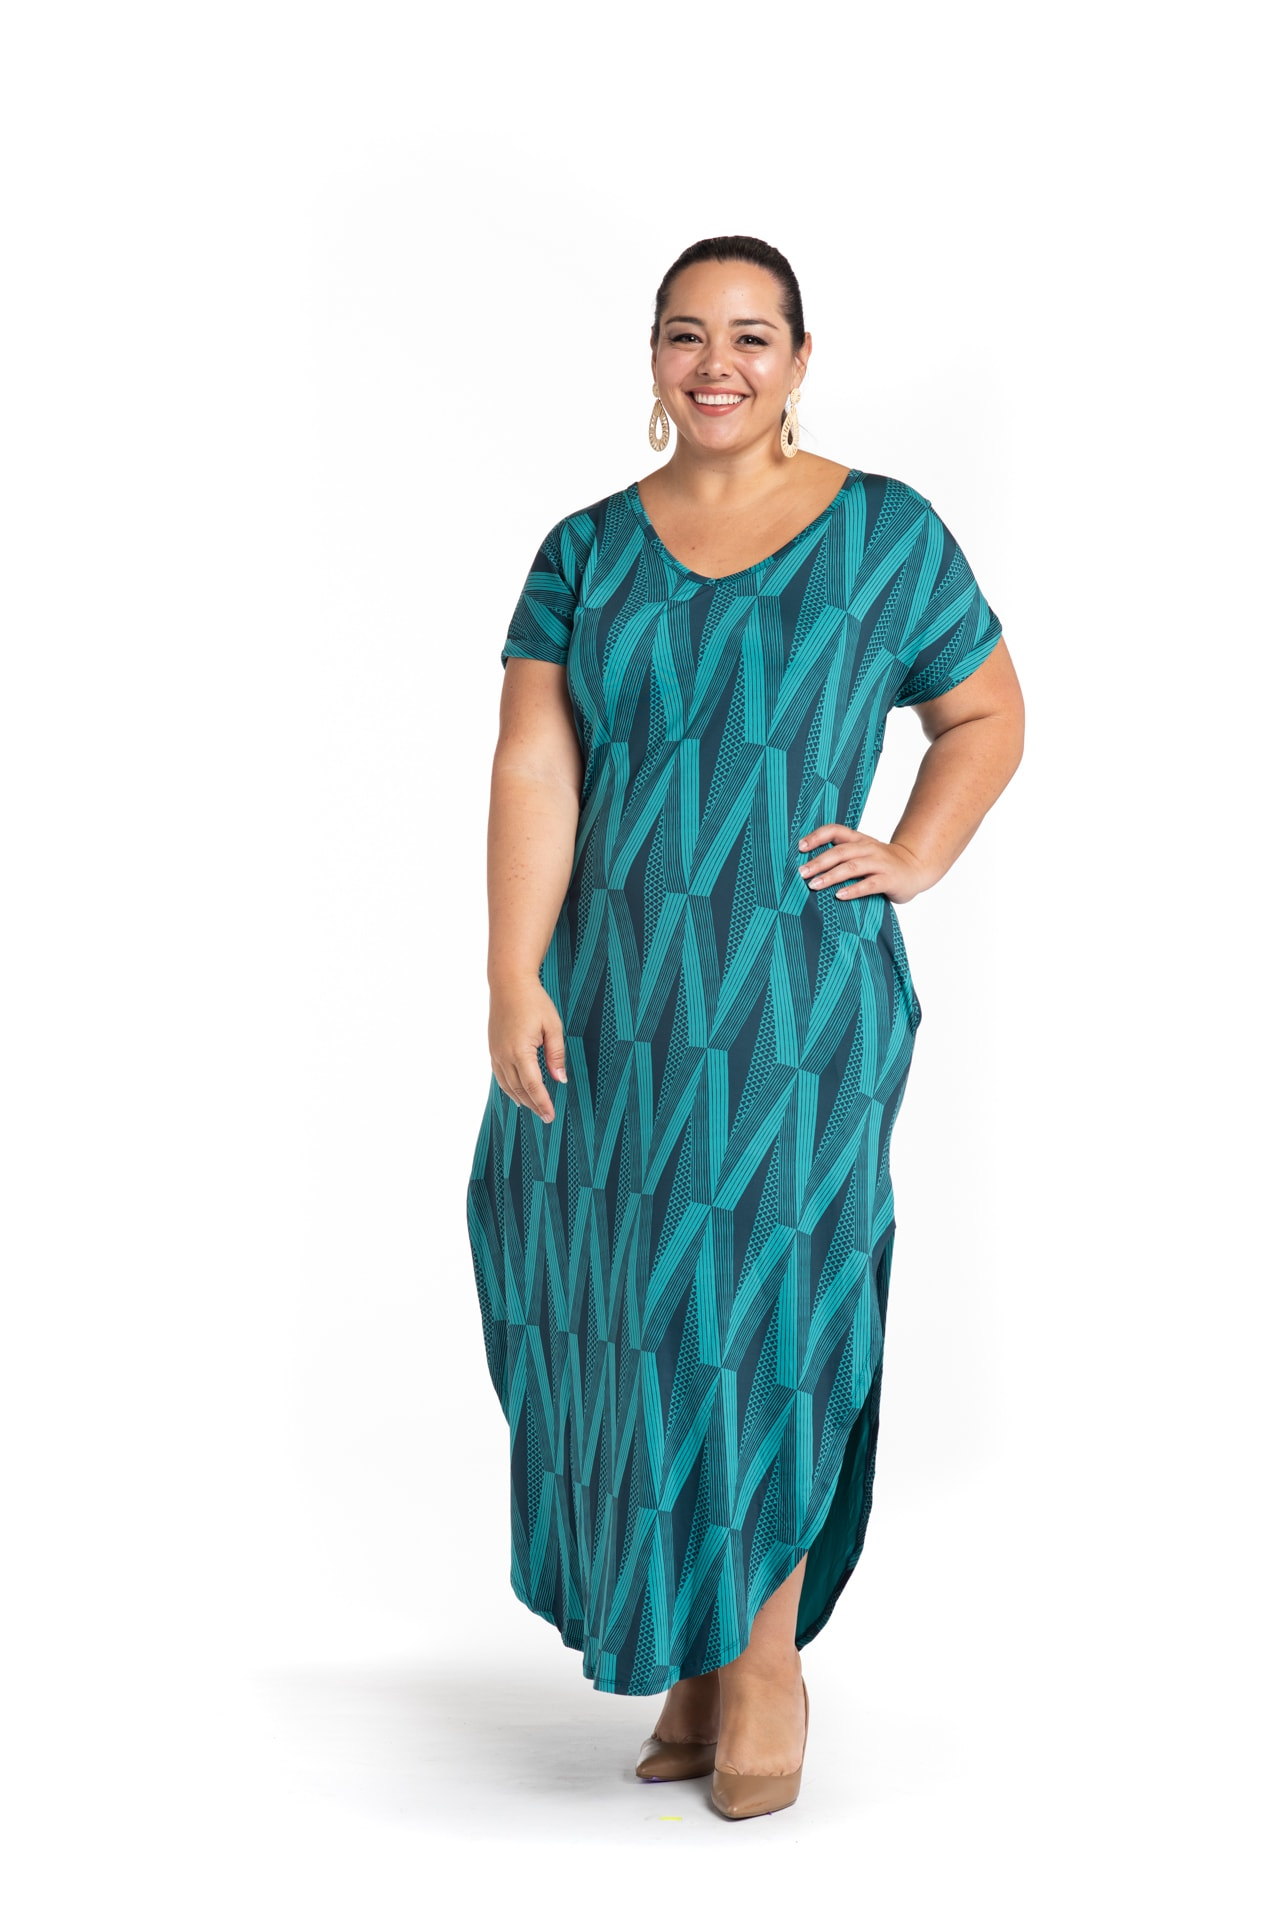 Model wearing Mahalo Nui Dress in Blue - Front View